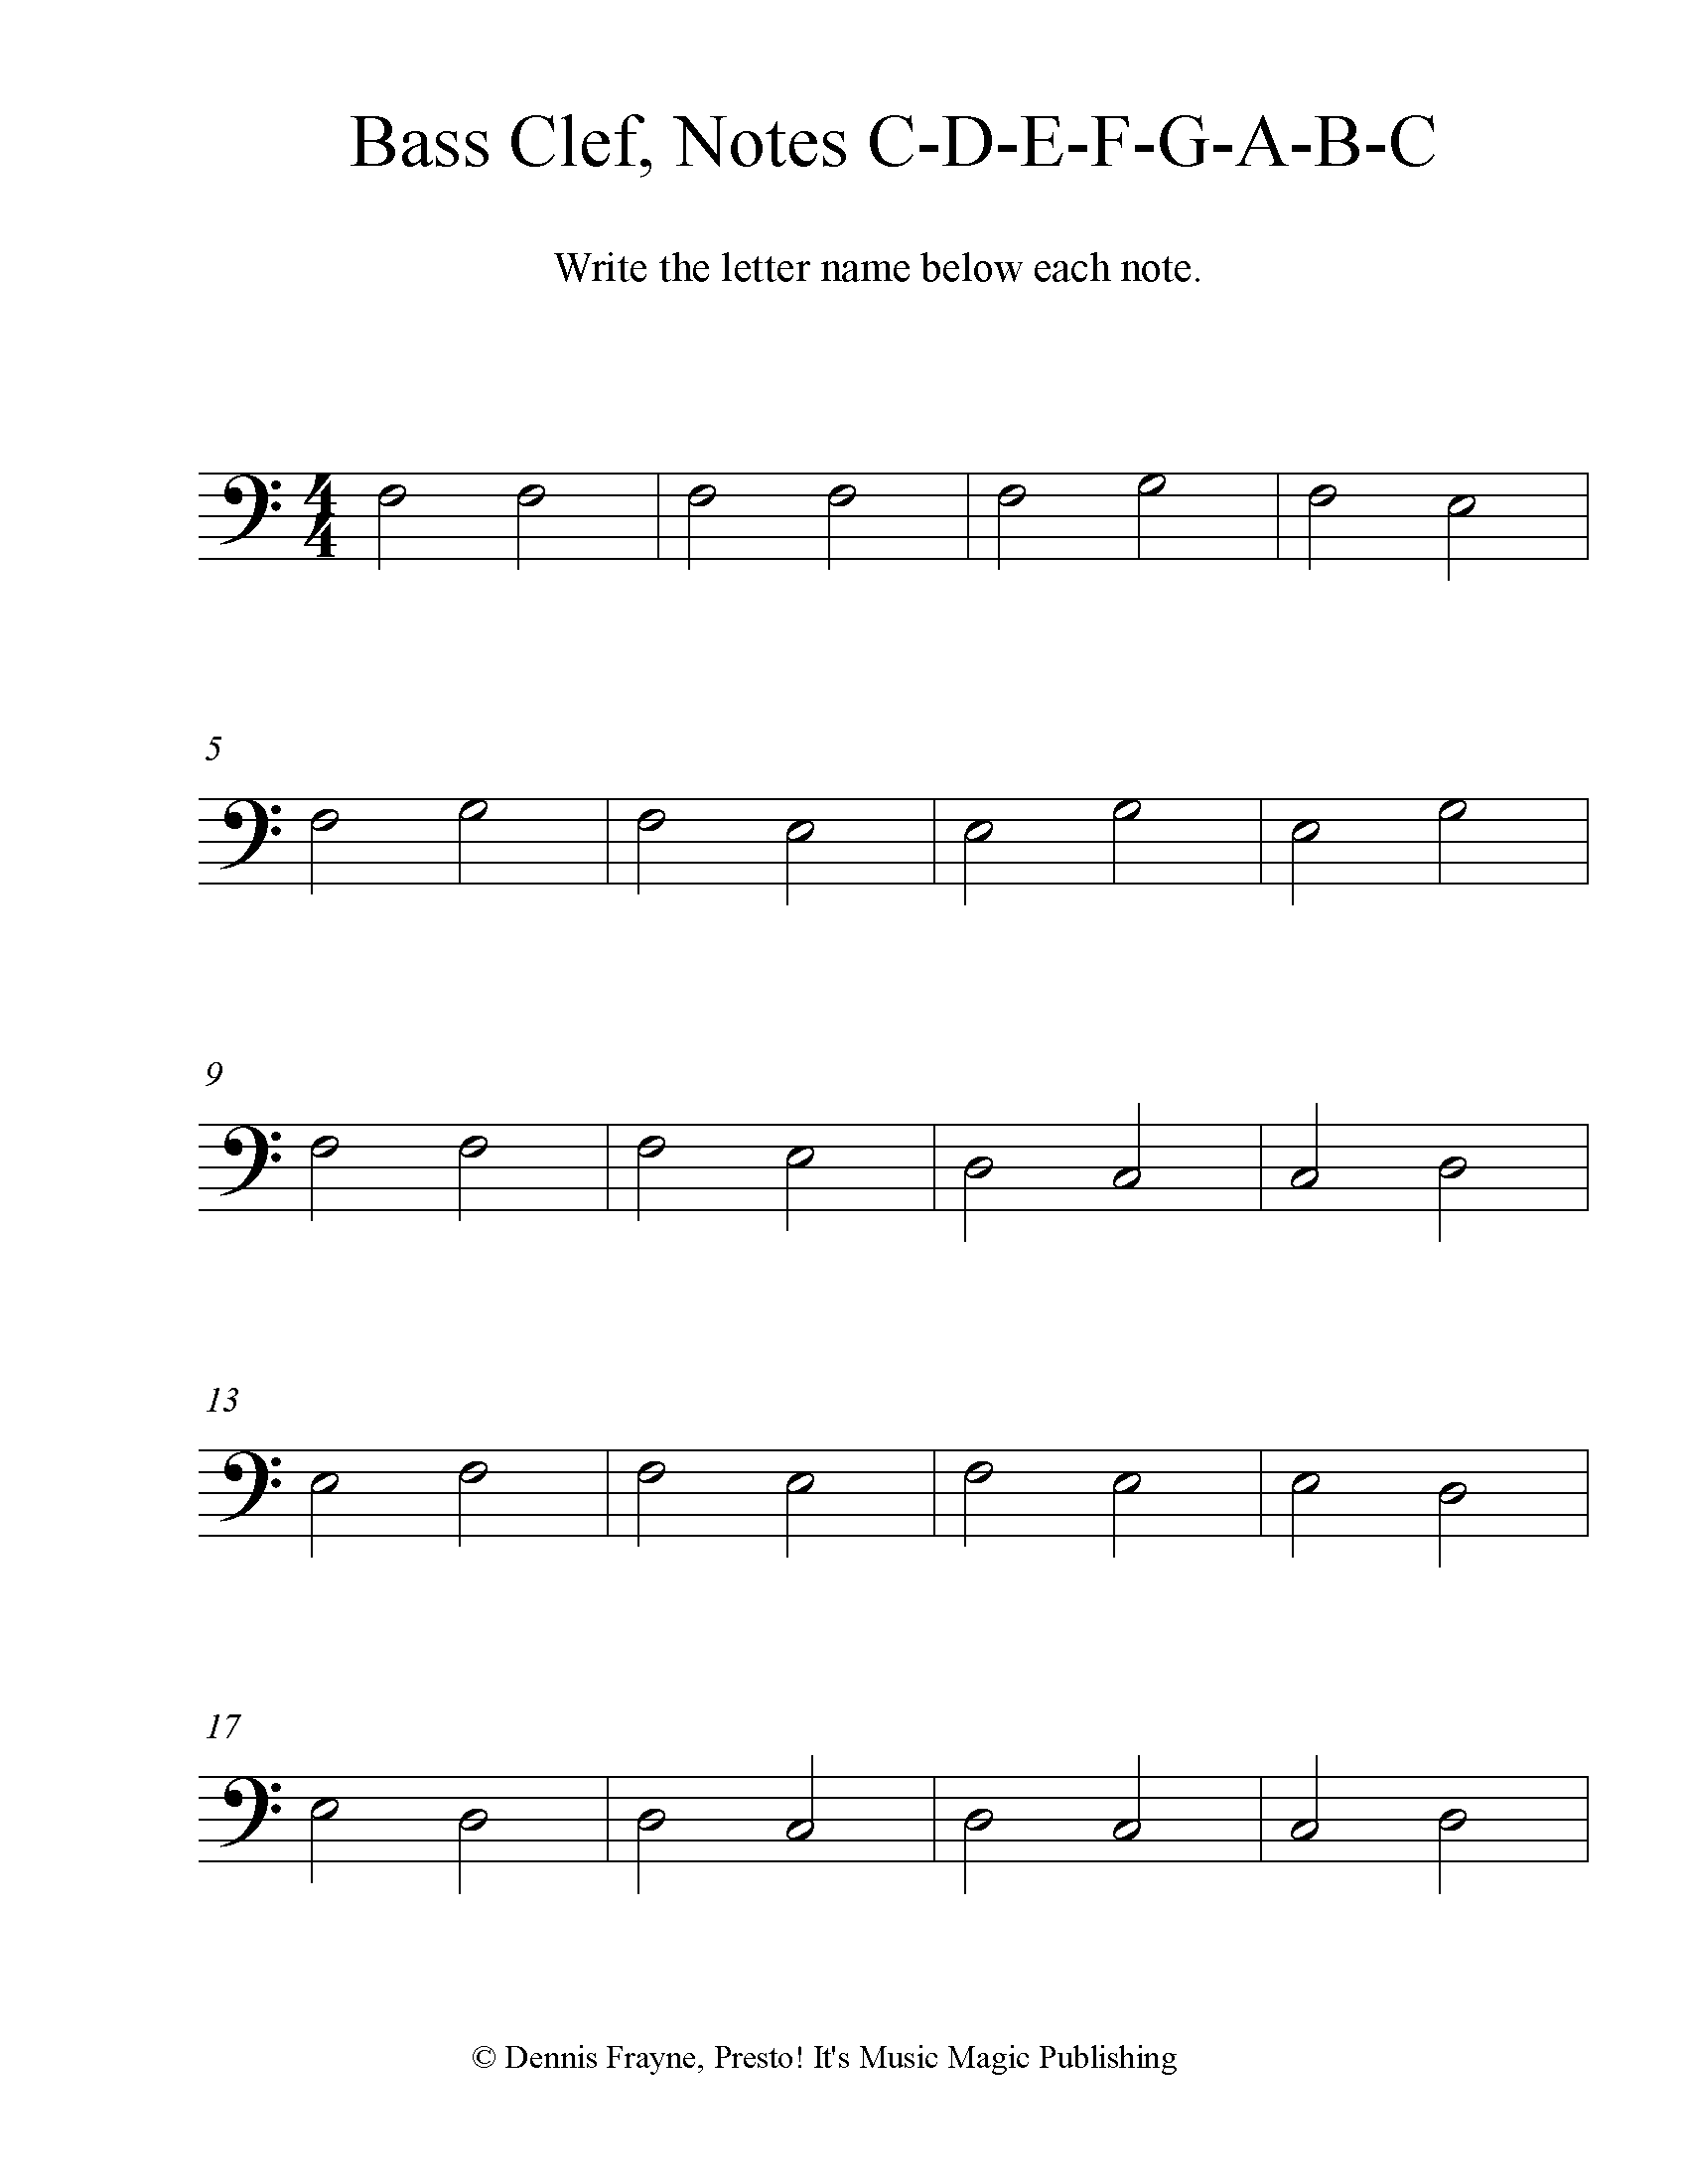 Bass Clef Note Identification Practice Worksheet, Level 2 4 pages